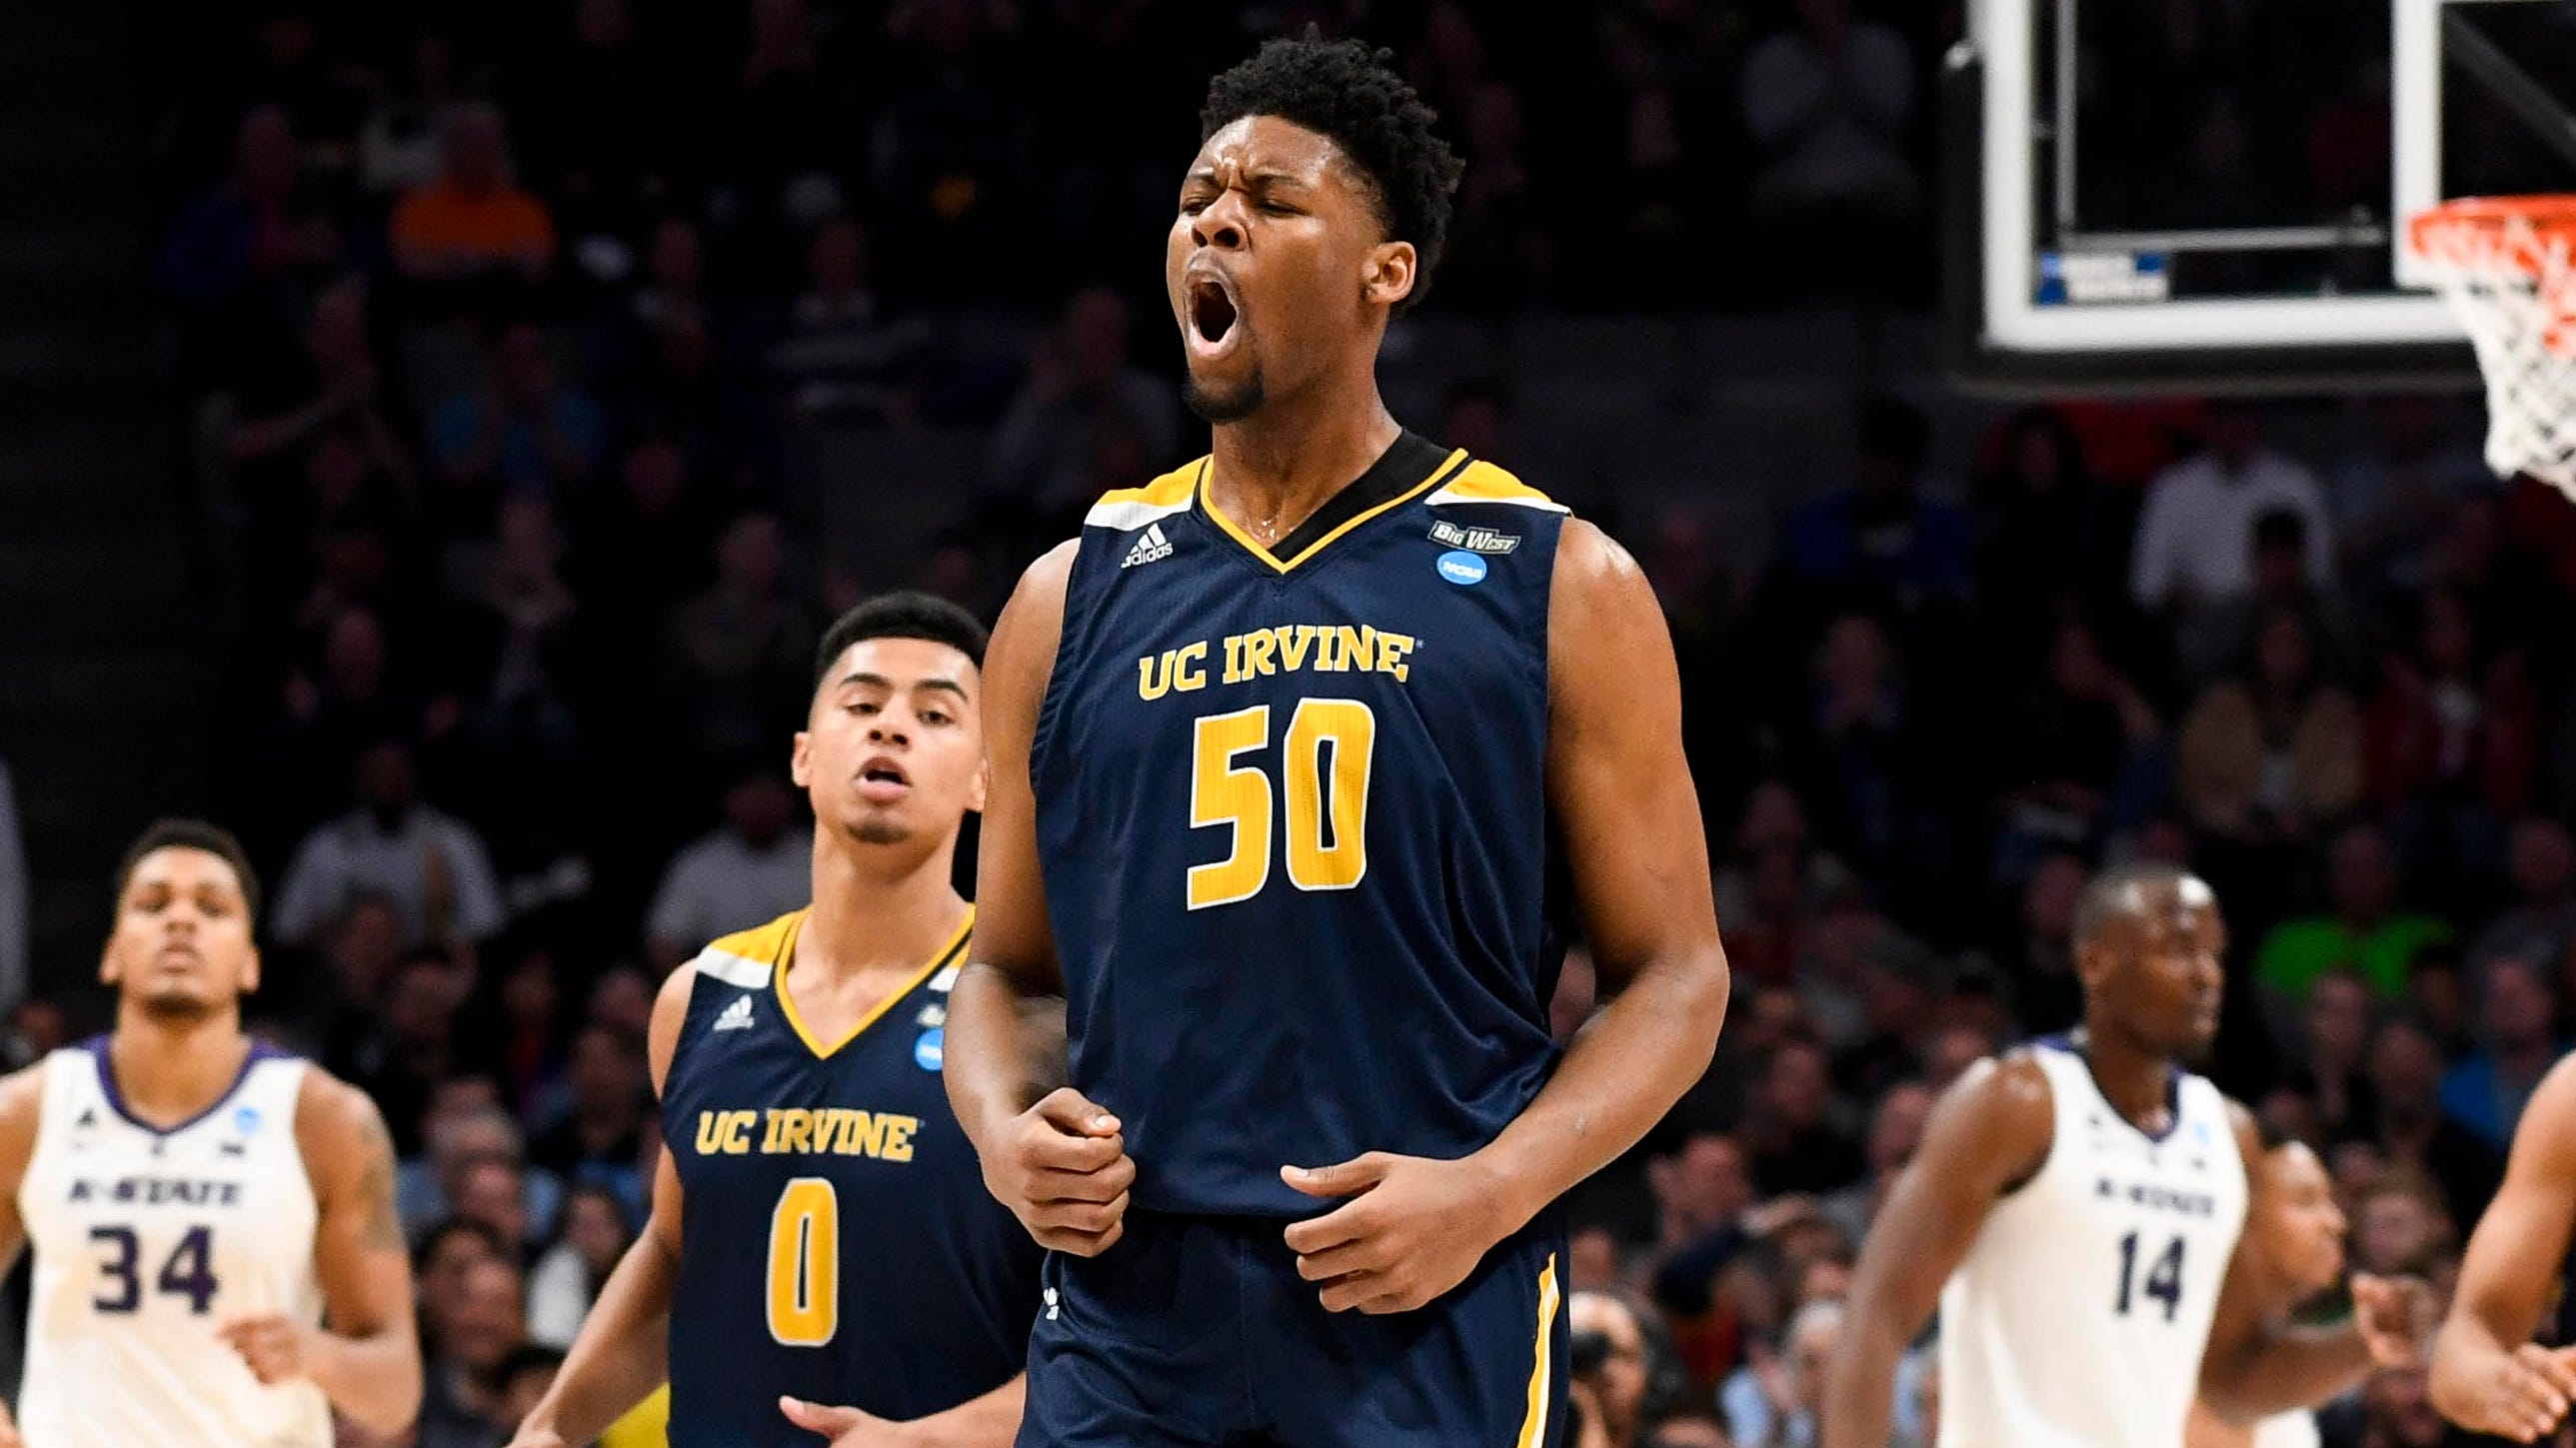 Elston Jones and UC Irvine will look to upend Oregon to reach the Sweet 16.